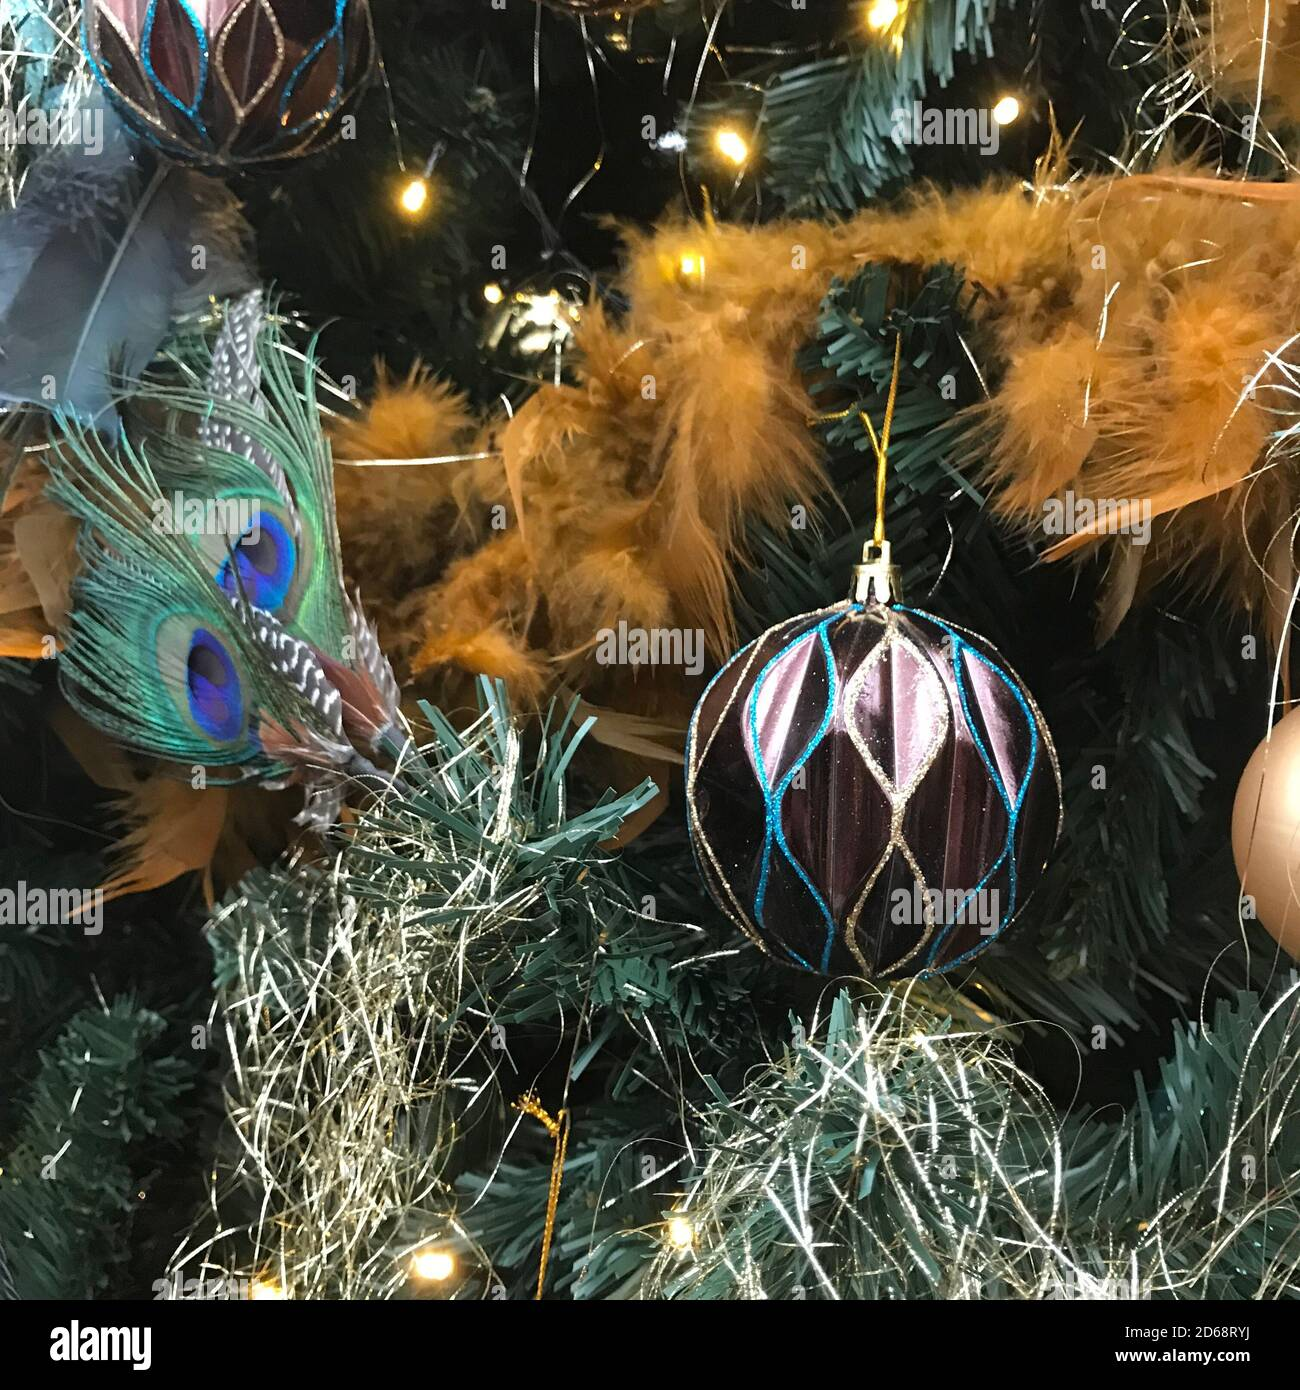 Christmas Decoration In Purple And Gold With Peacock Feather Lights And Balls In A Christmas Tree Stock Photo Alamy